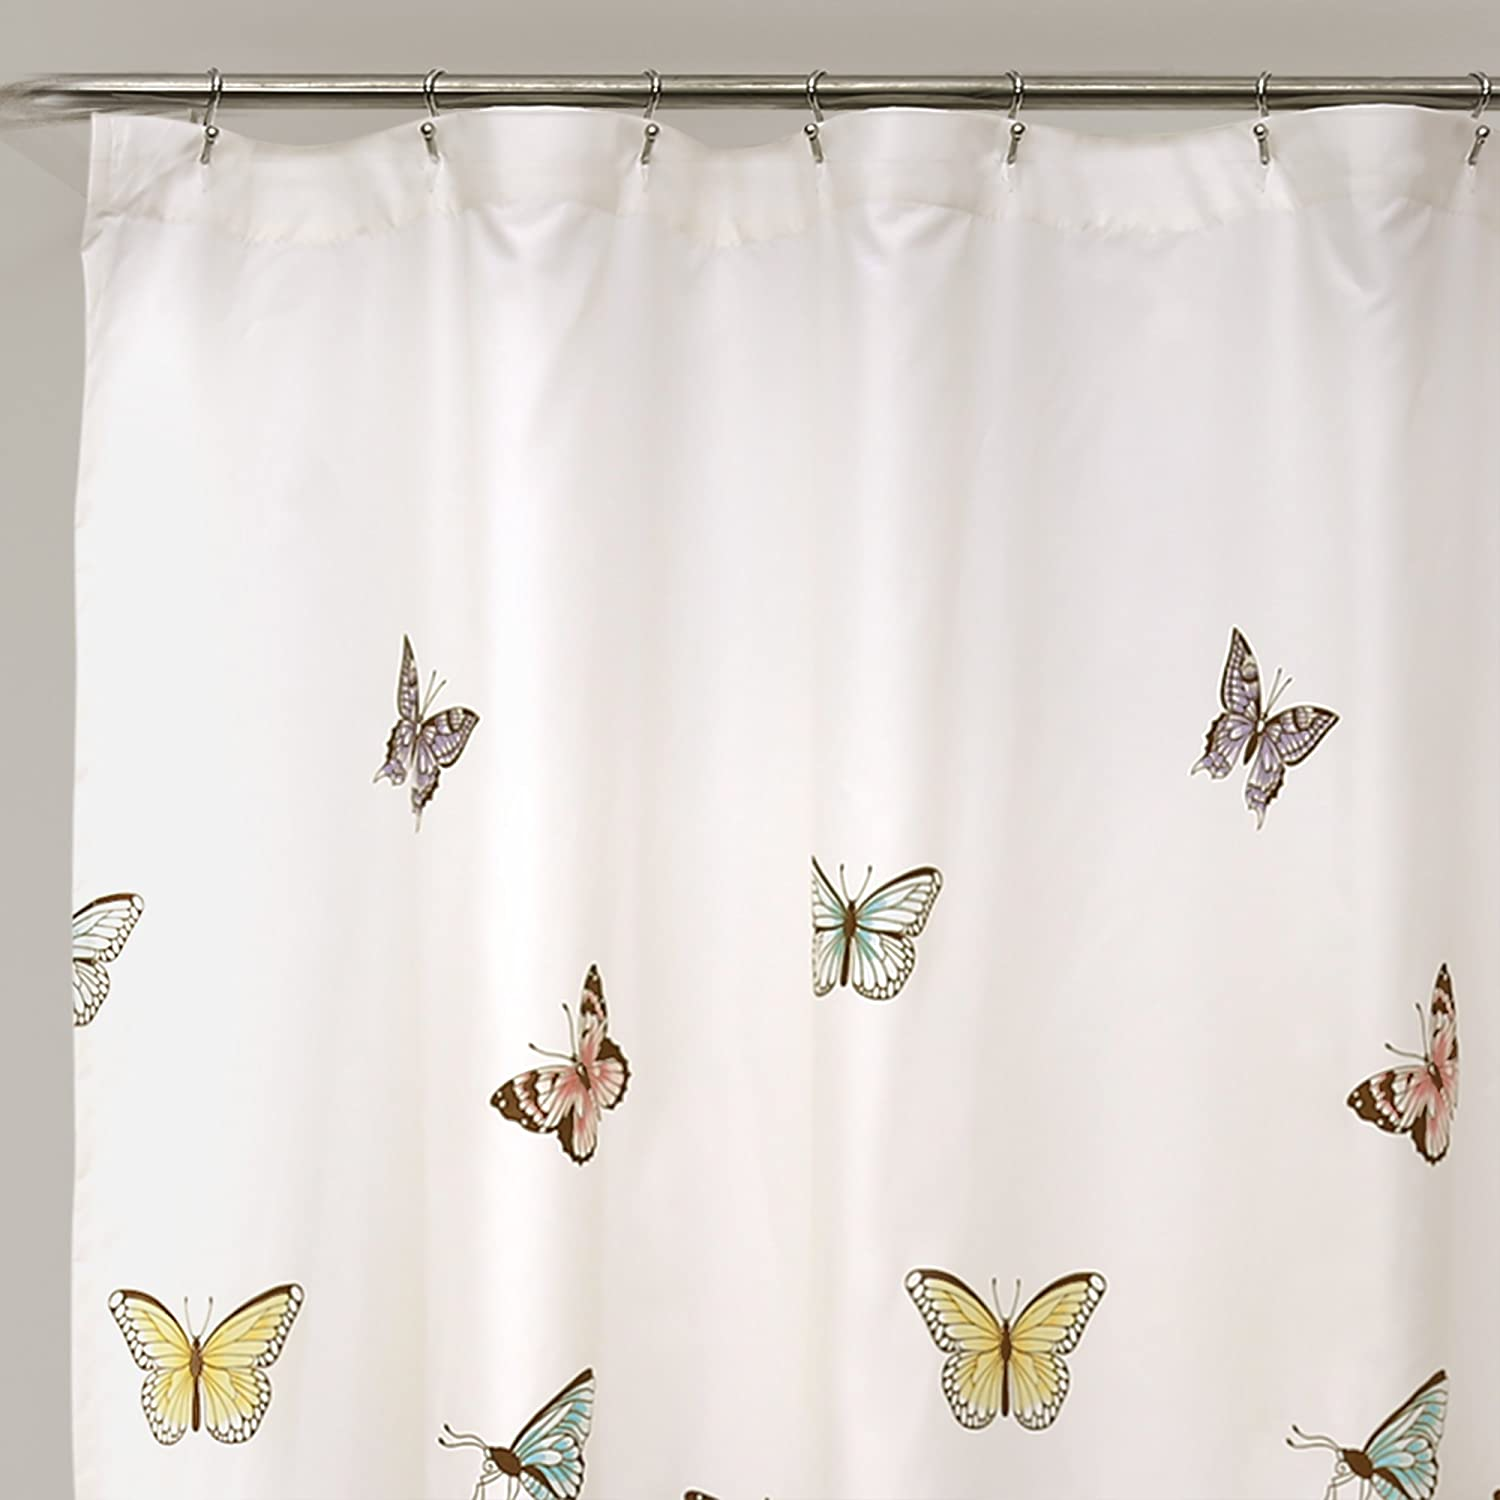 Butterfly Pink With Hook Shower Curtain Brand New Gift